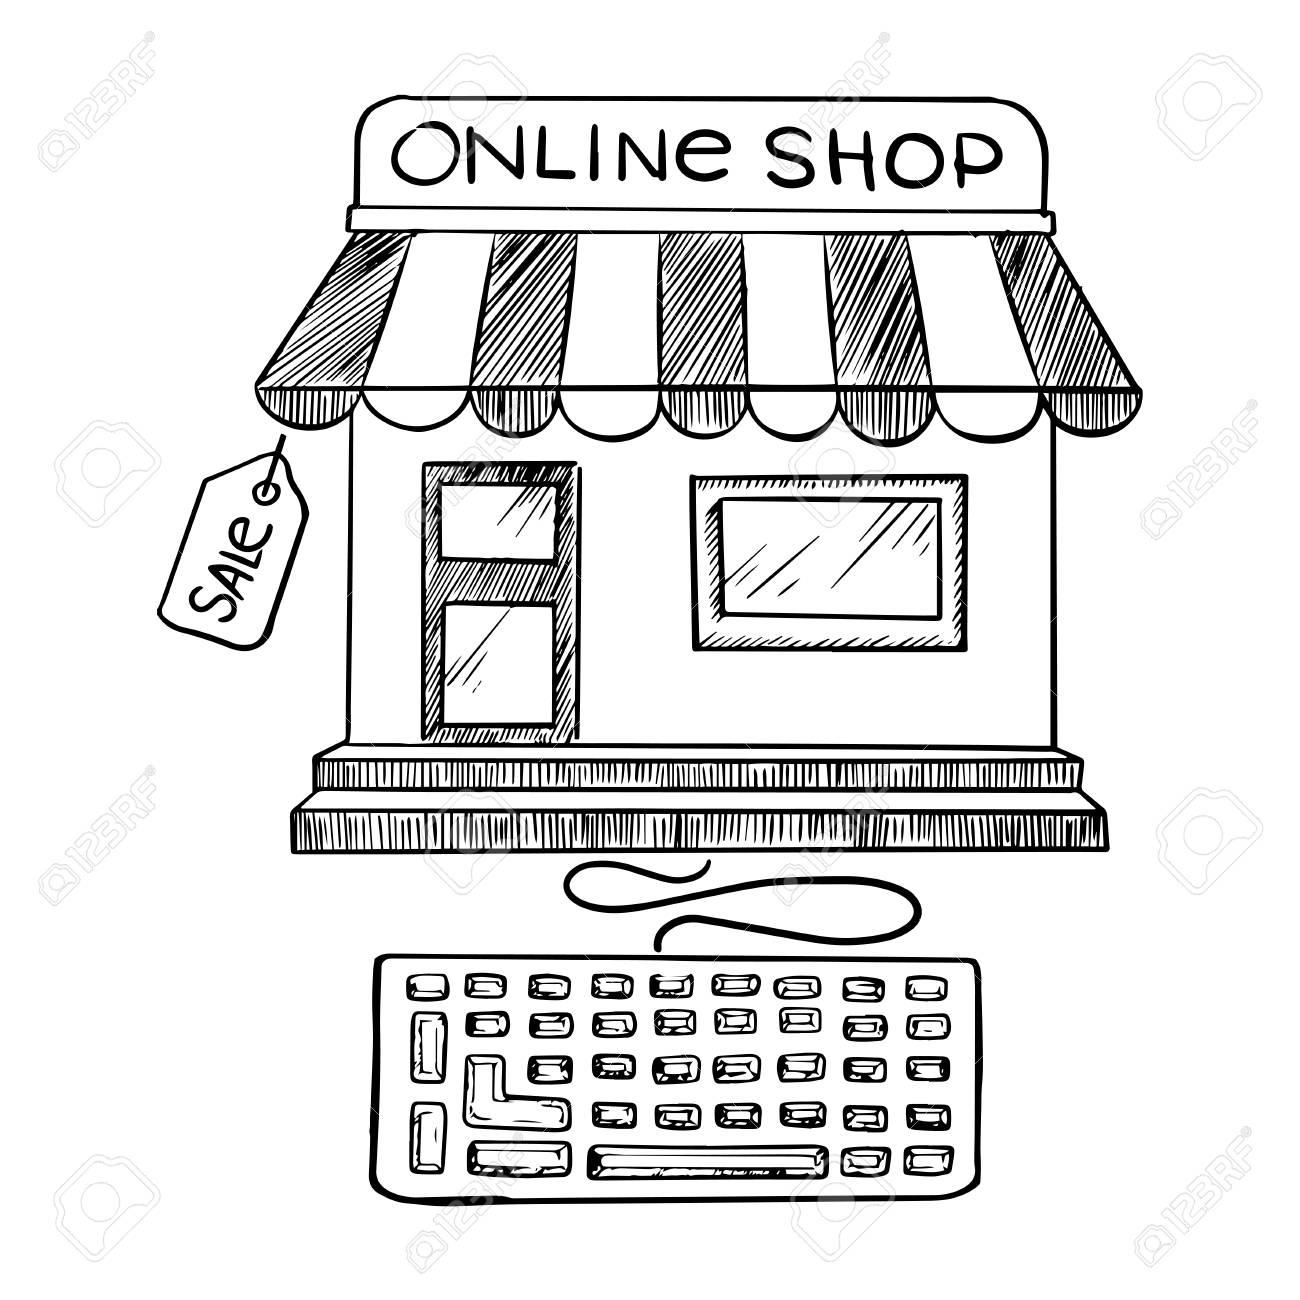 Online shopping and store icon with a black and white sketch